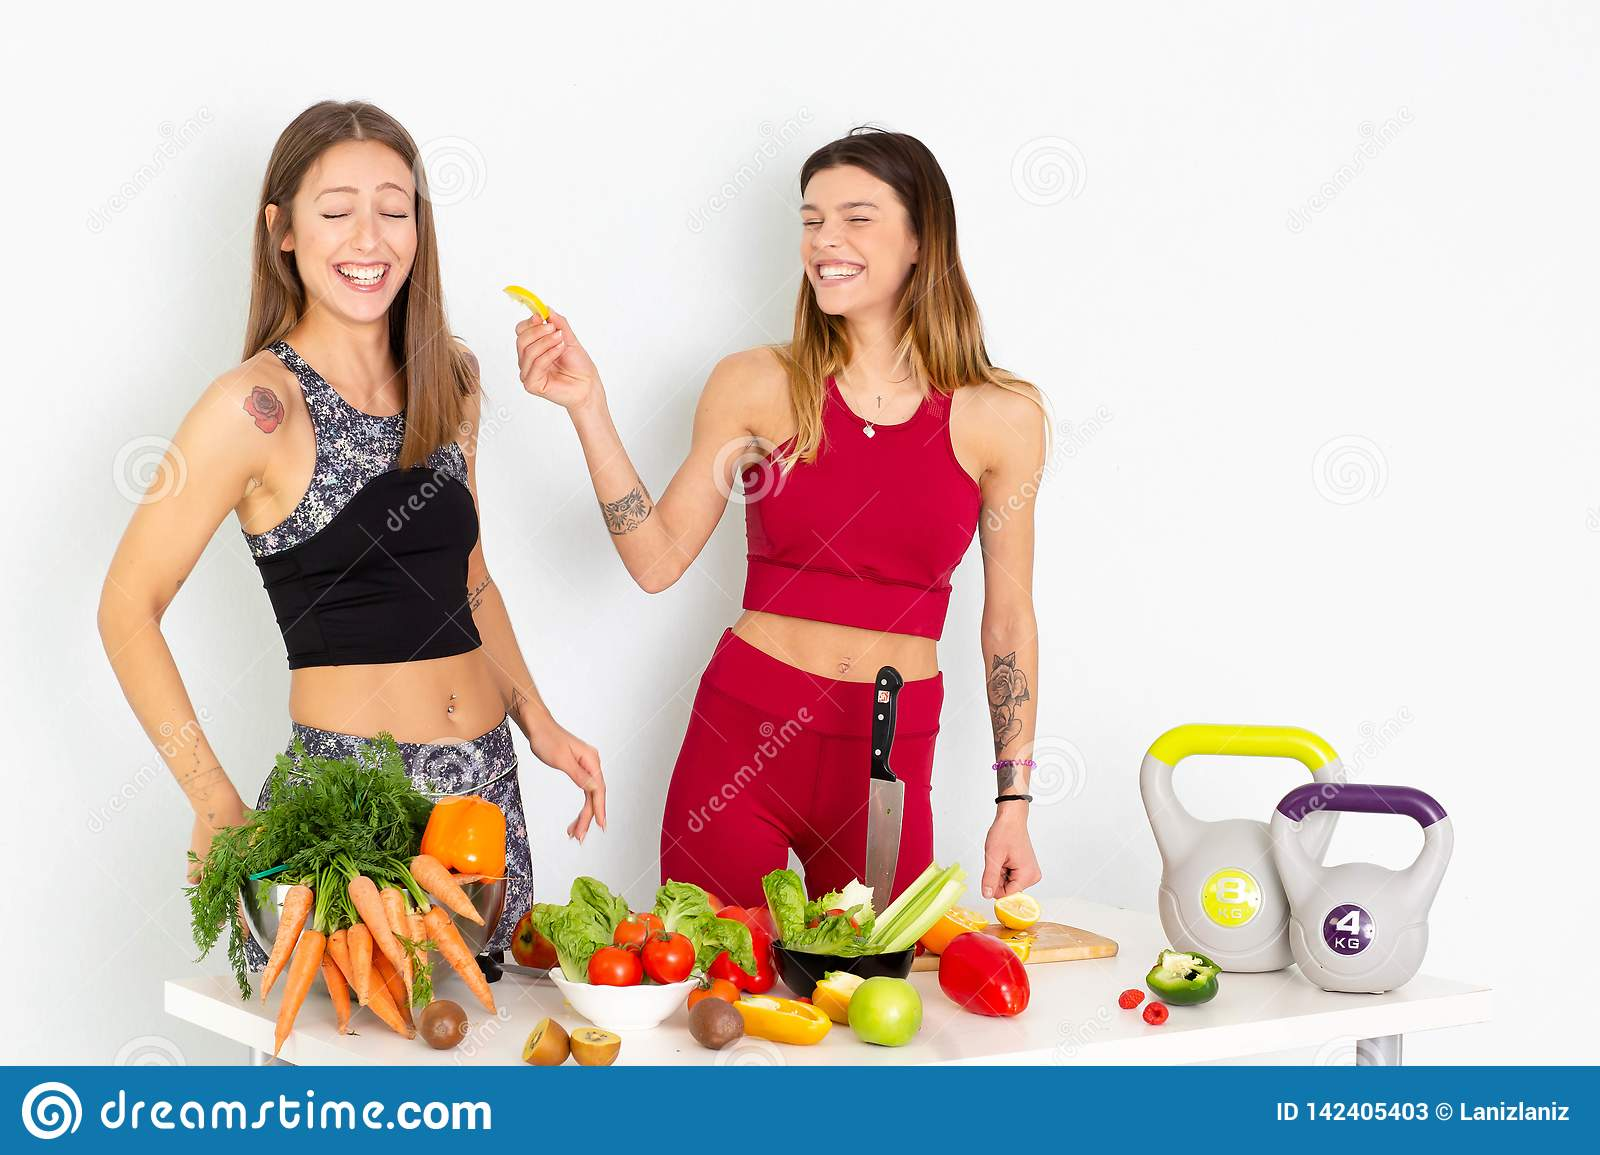 Healthy Eating Women Cooking Salad Beautiful Smiling Vegan Girls Going To Eat Fresh Green Organic Vegetables In Kitchen Happy Pe Stock Image Image Of Athletic Healthy 142405403 Eat better and exercise smarter. https www dreamstime com healthy eating women cooking salad beautiful smiling vegan girls going to eat fresh green organic vegetables kitchen happy pe image142405403